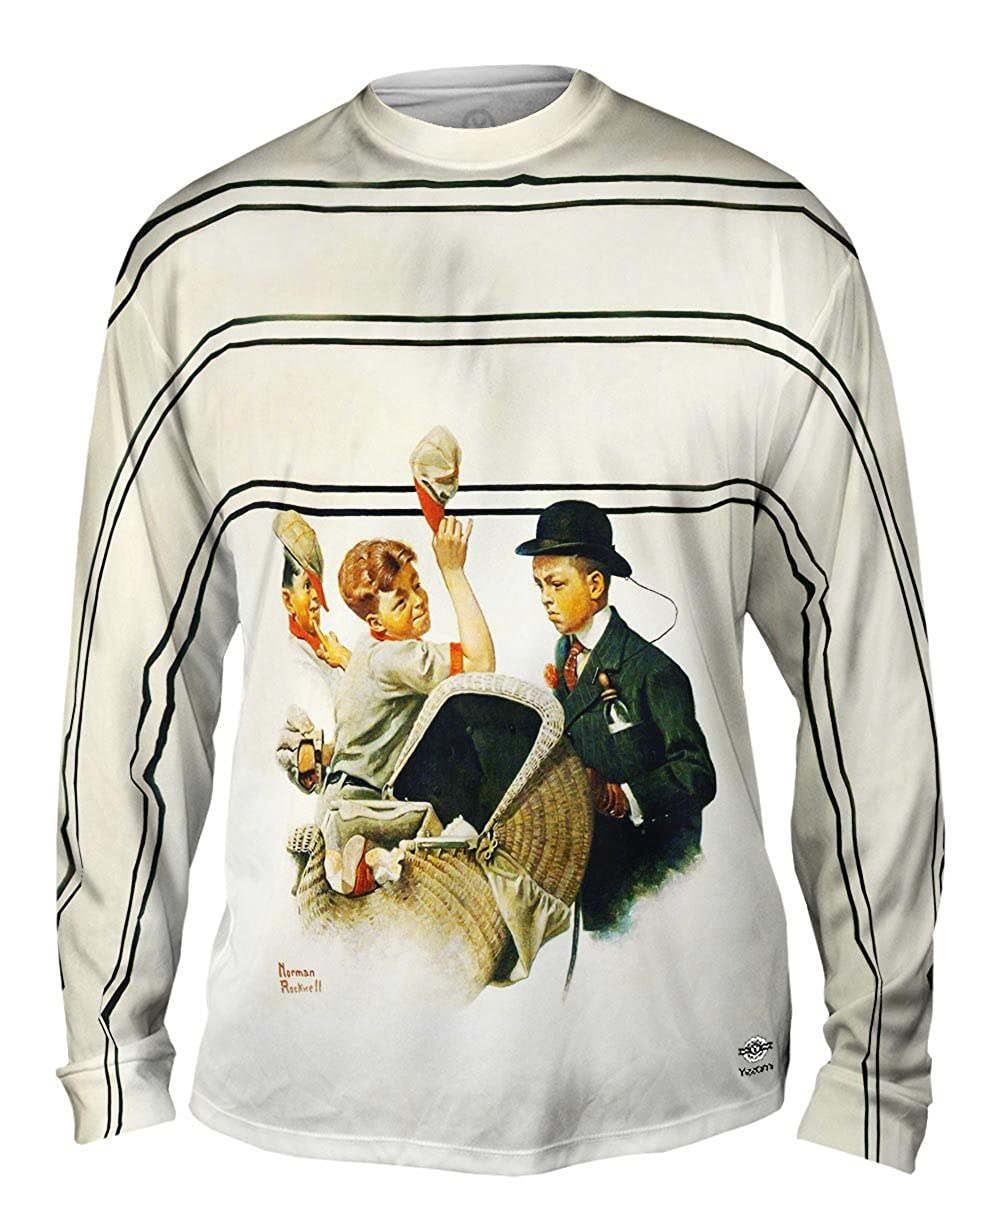 Norman Rockwell Yizzam Mens Long Sleeve 2555 Boy with Baby Car